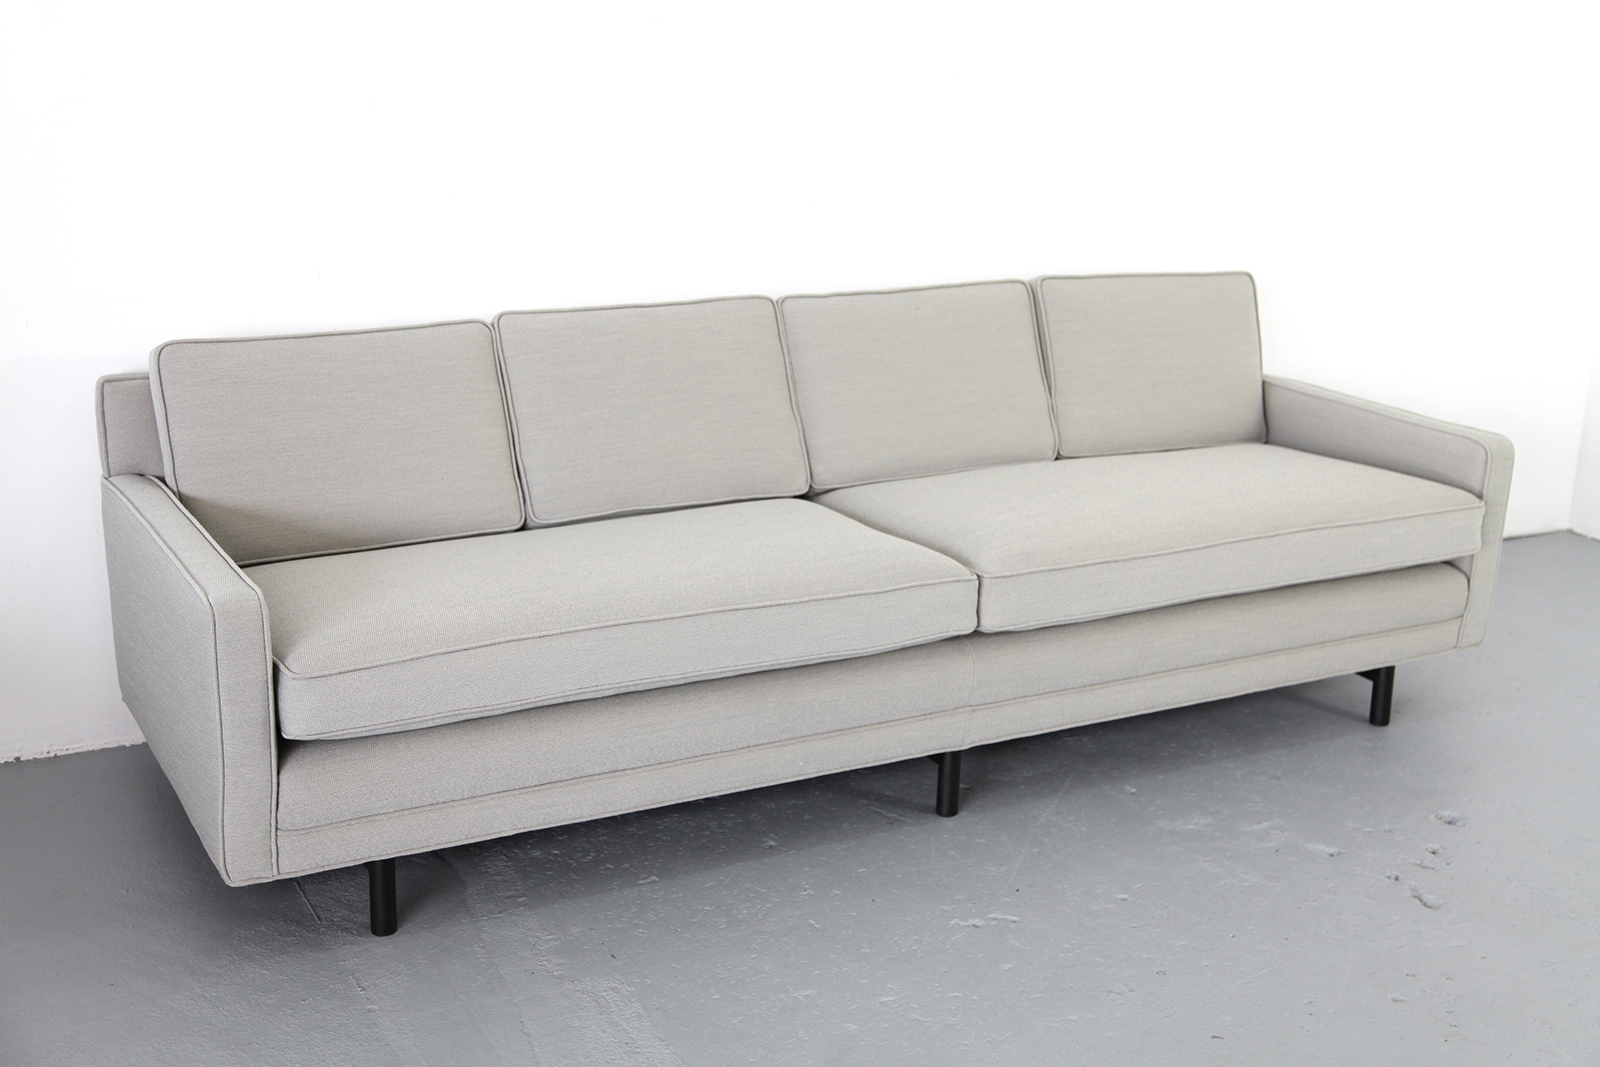 Four Seater Sofas Driade Megara Four Seater Sofa Seater Fabric For Four Seat Sofas (Image 8 of 15)